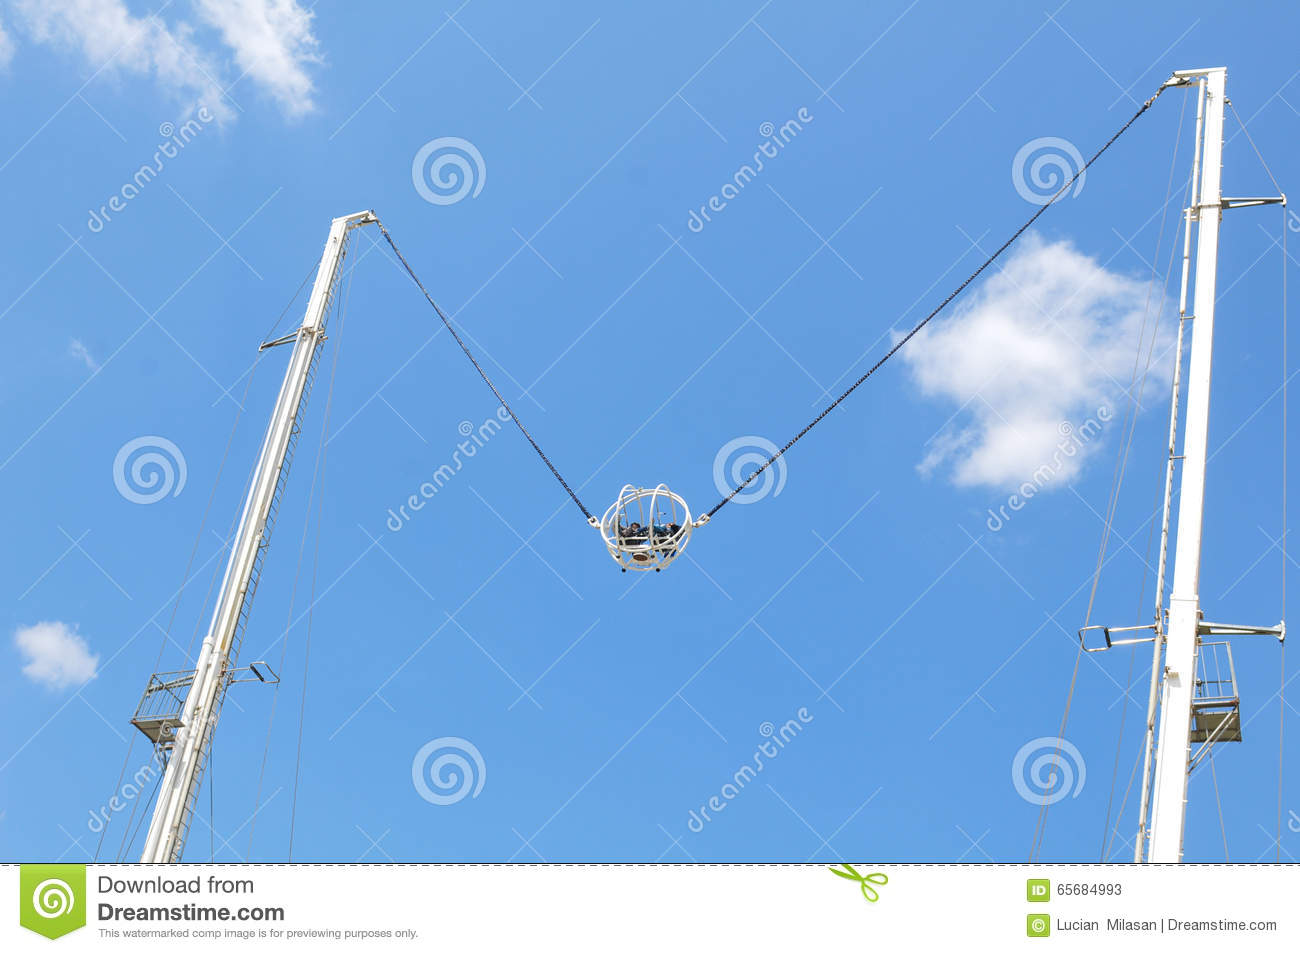 bungee jumping editorial stock photo. image of high, laughter - 65684993